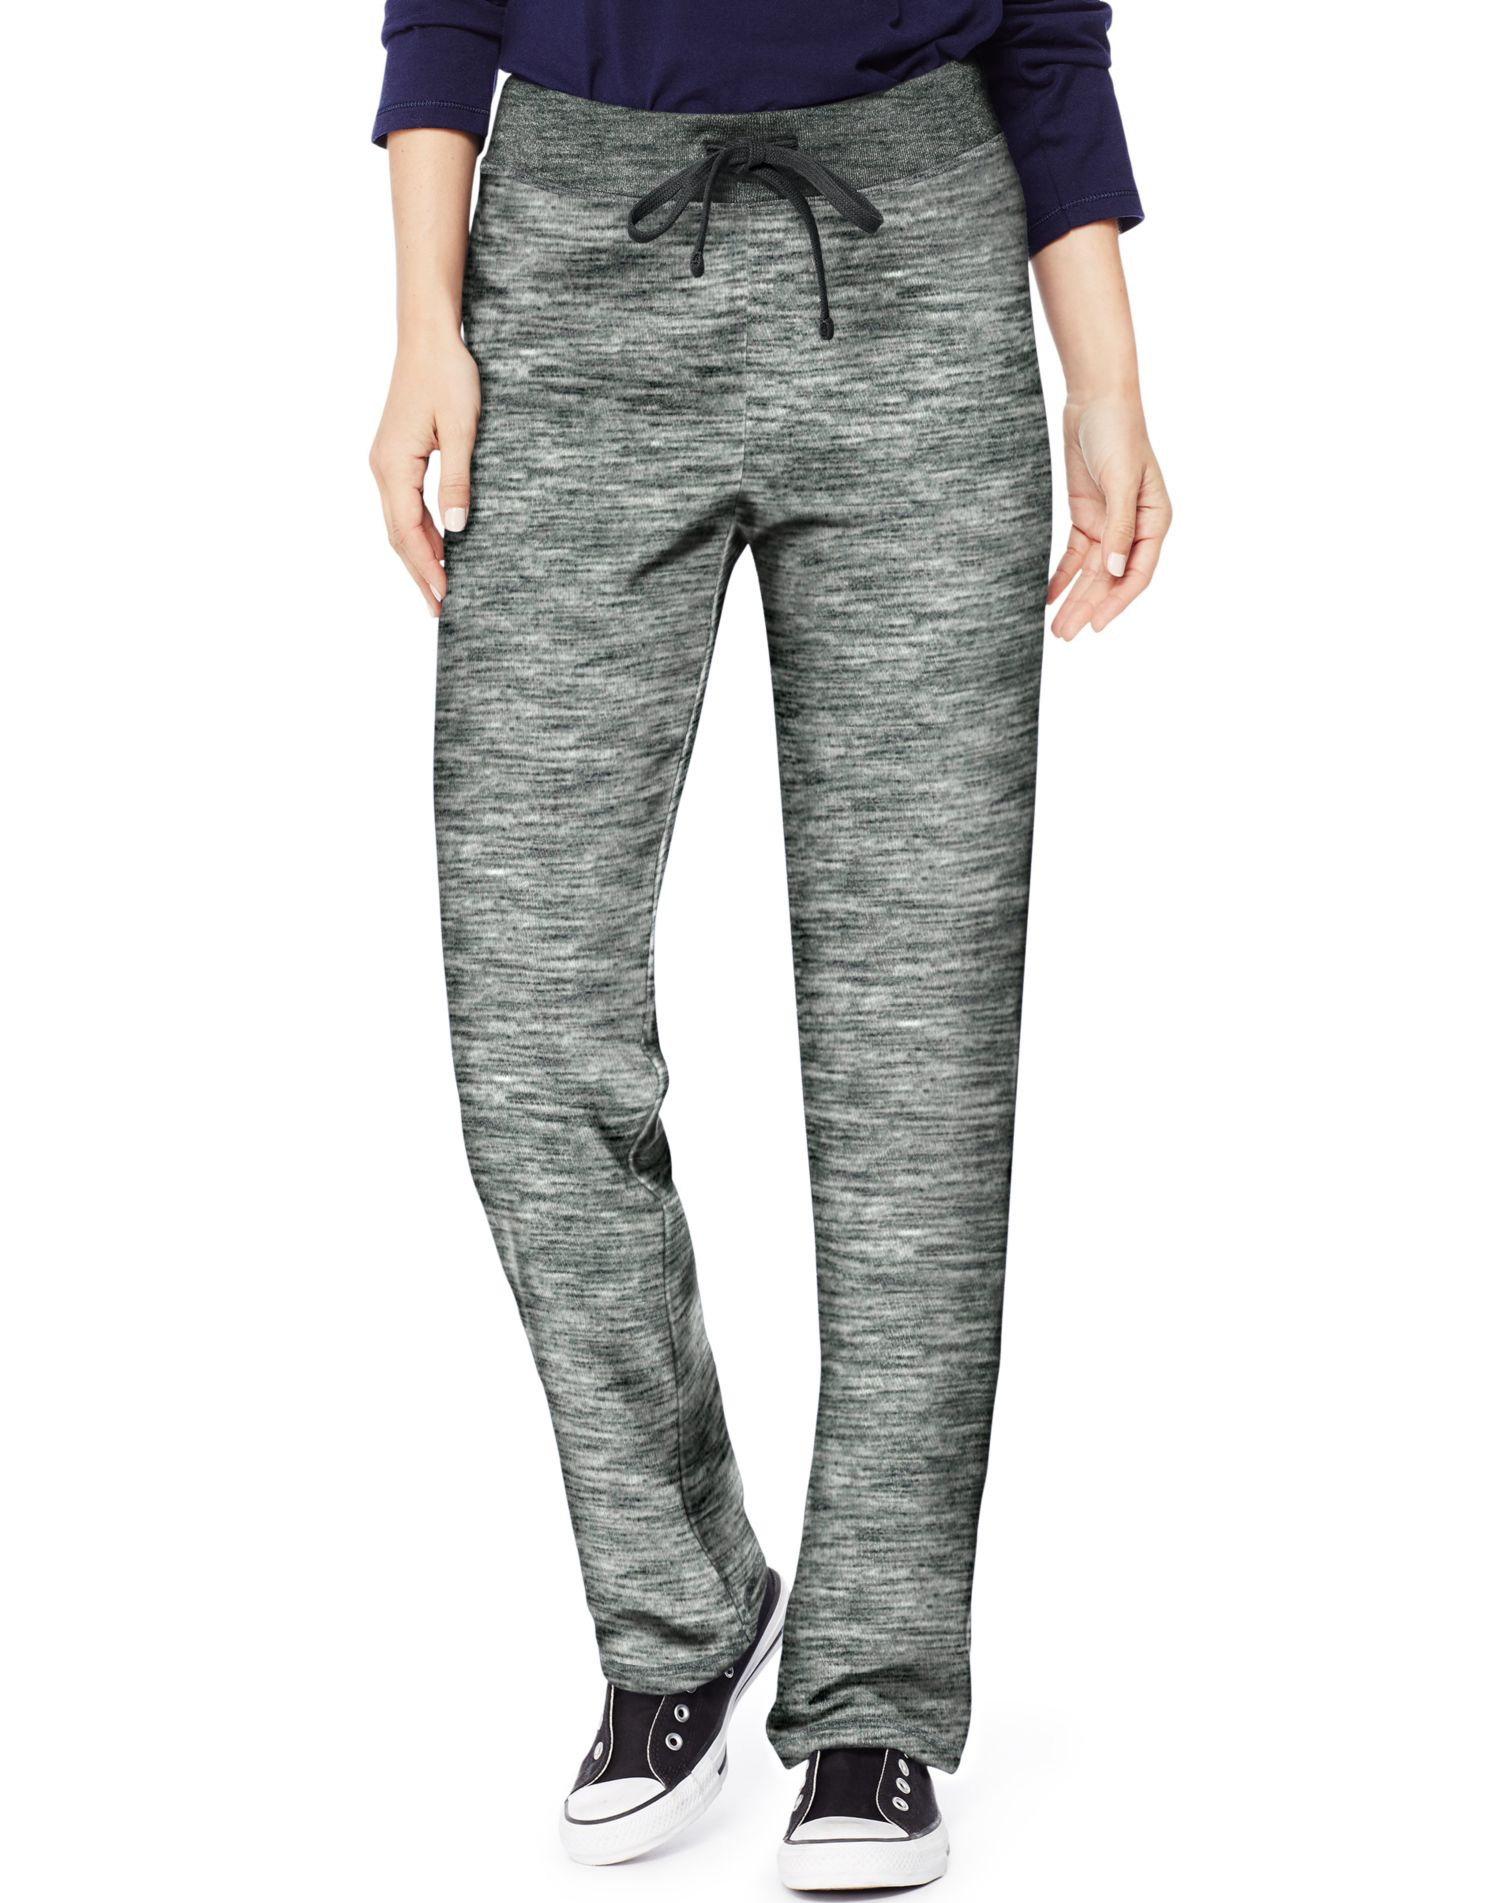 Women's French Terry Pant With Outside Drawcord